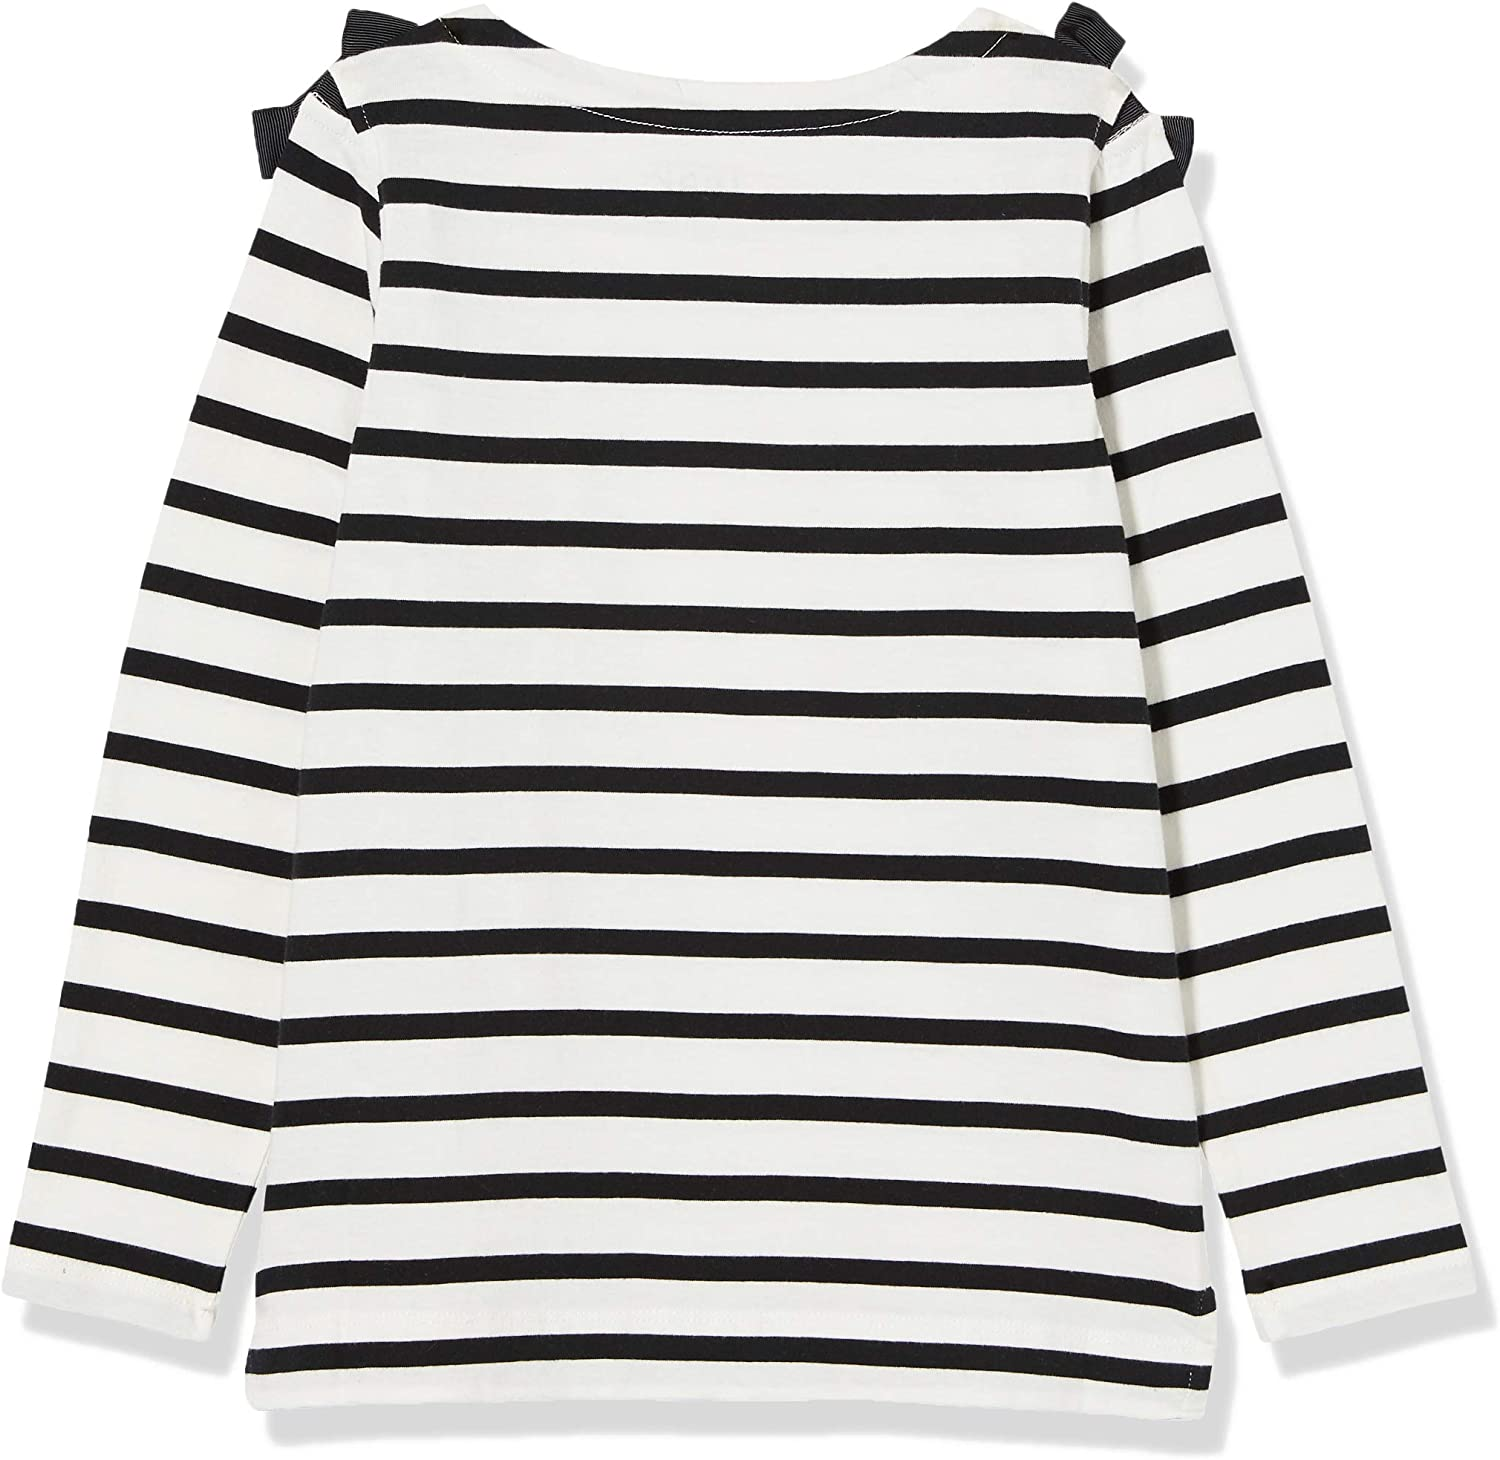 Brand LOOK by crewcuts Girls 3//4 Sleeve Bow Shoulder Top